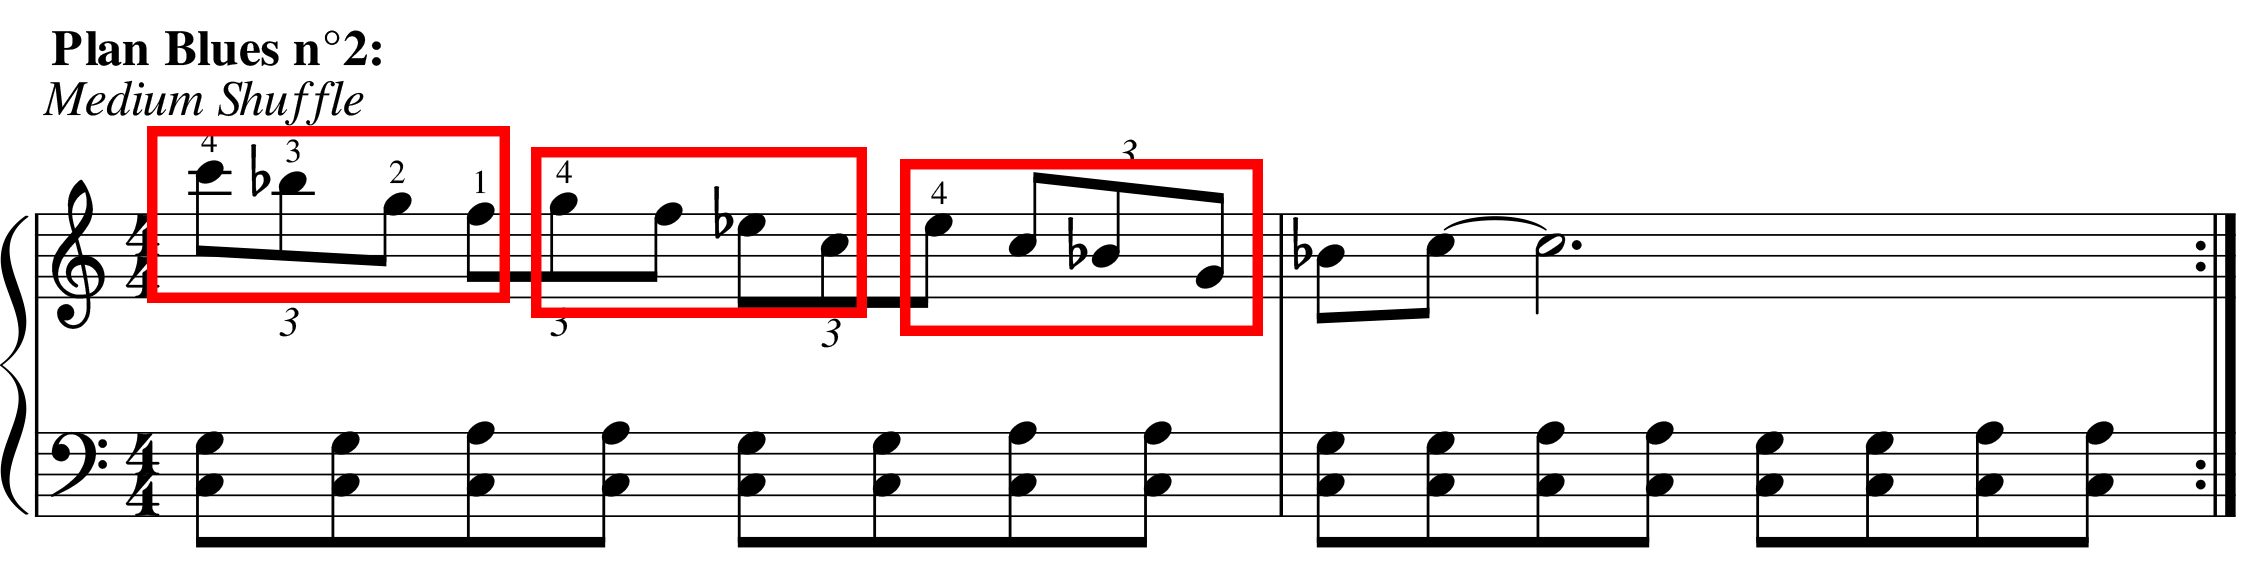 plan-blues-2-shuffle-4notes